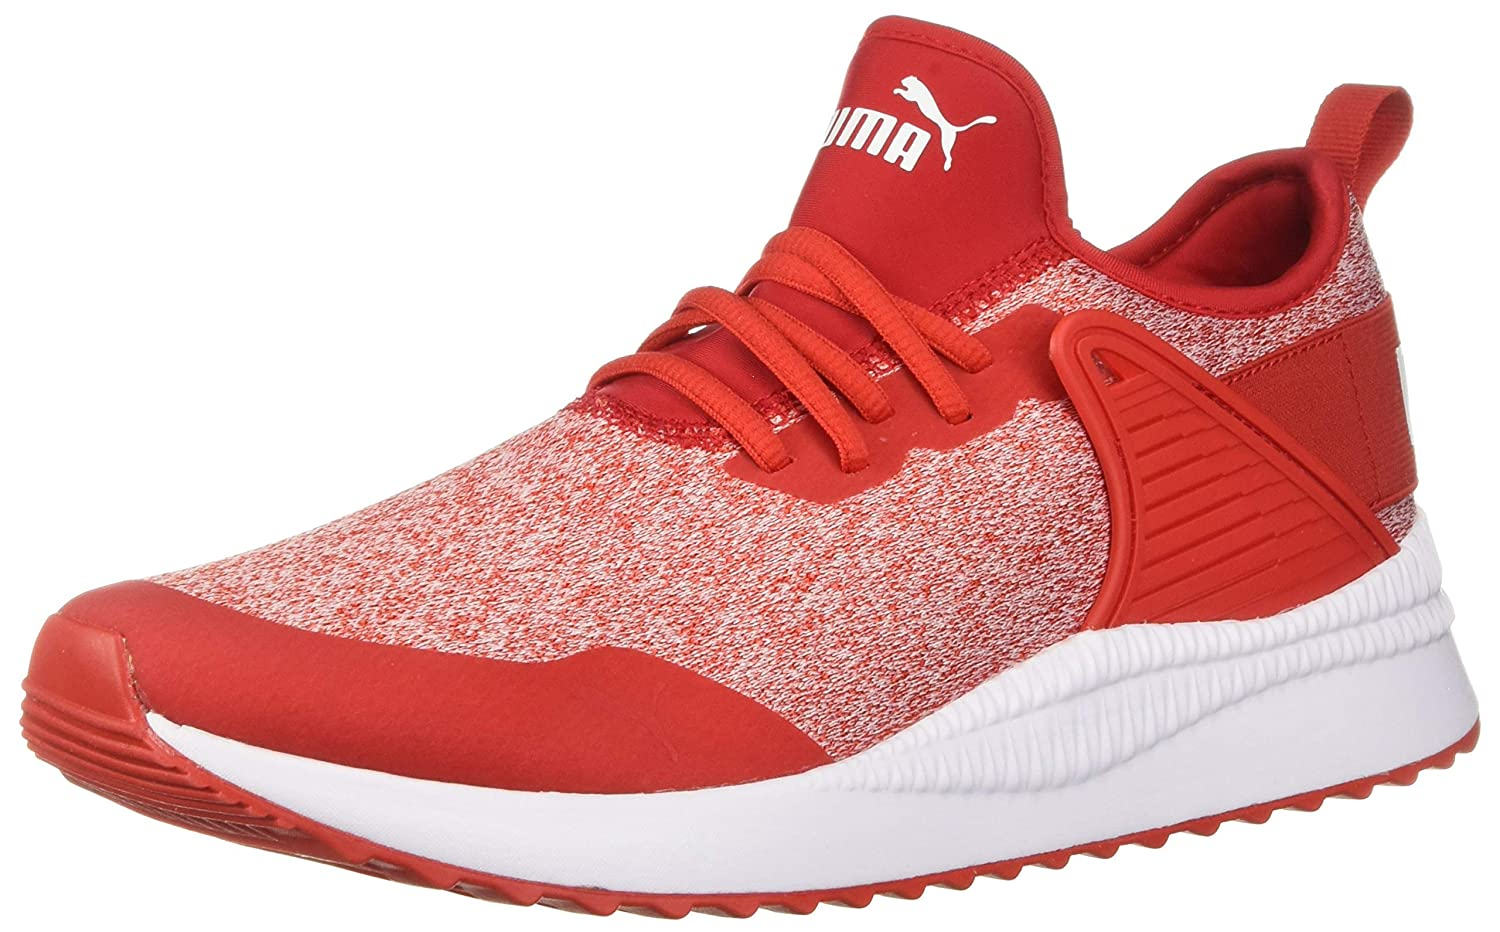 d5069e98fd194 Puma Men's Pacer Next Cage Sneaker: Buy Online at Low Prices in ...